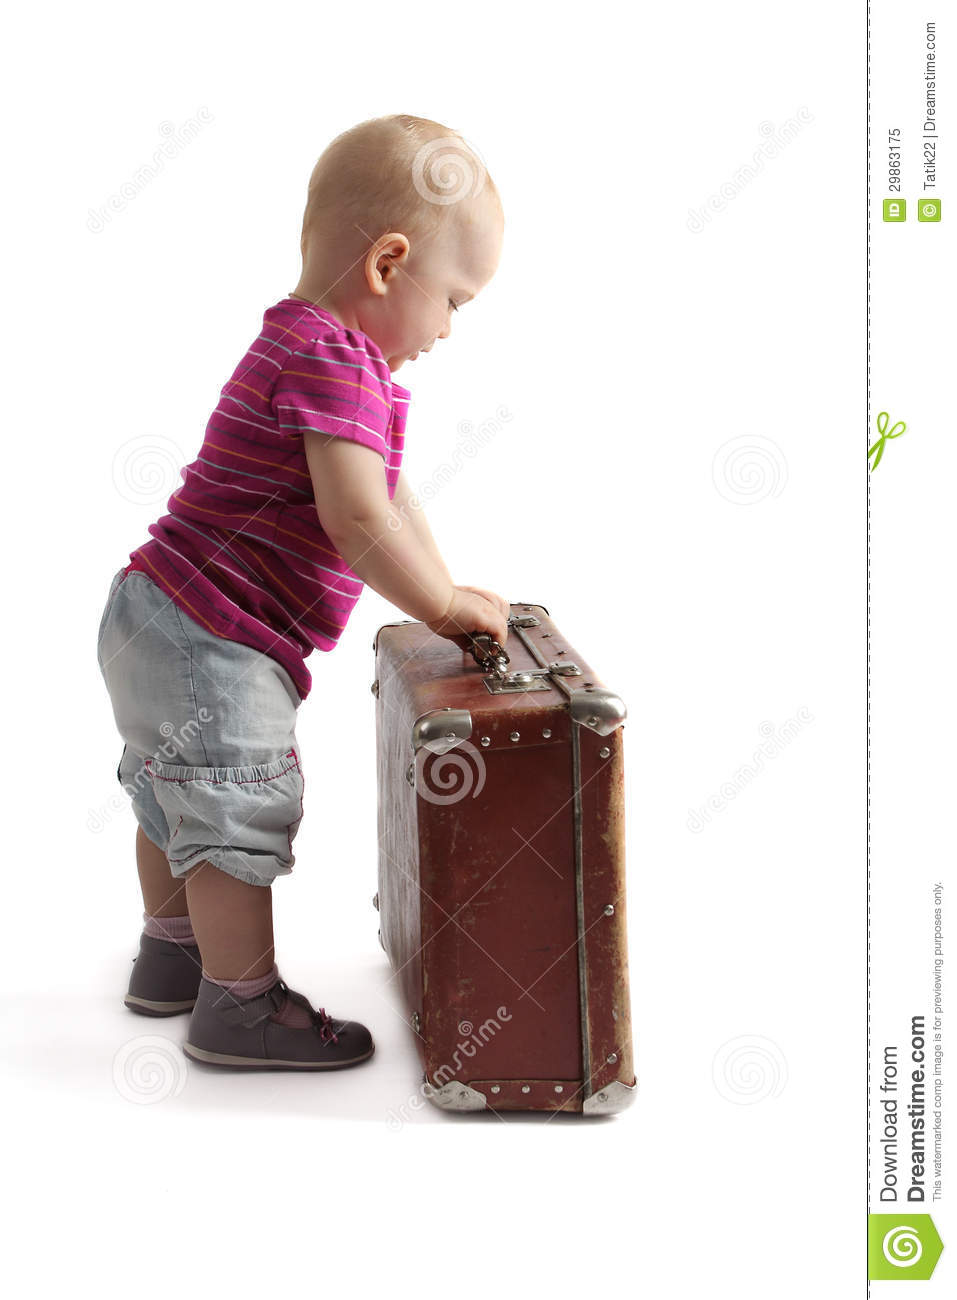 Small Child Standing Next To A Suitcase Royalty Free Stock Photo ...